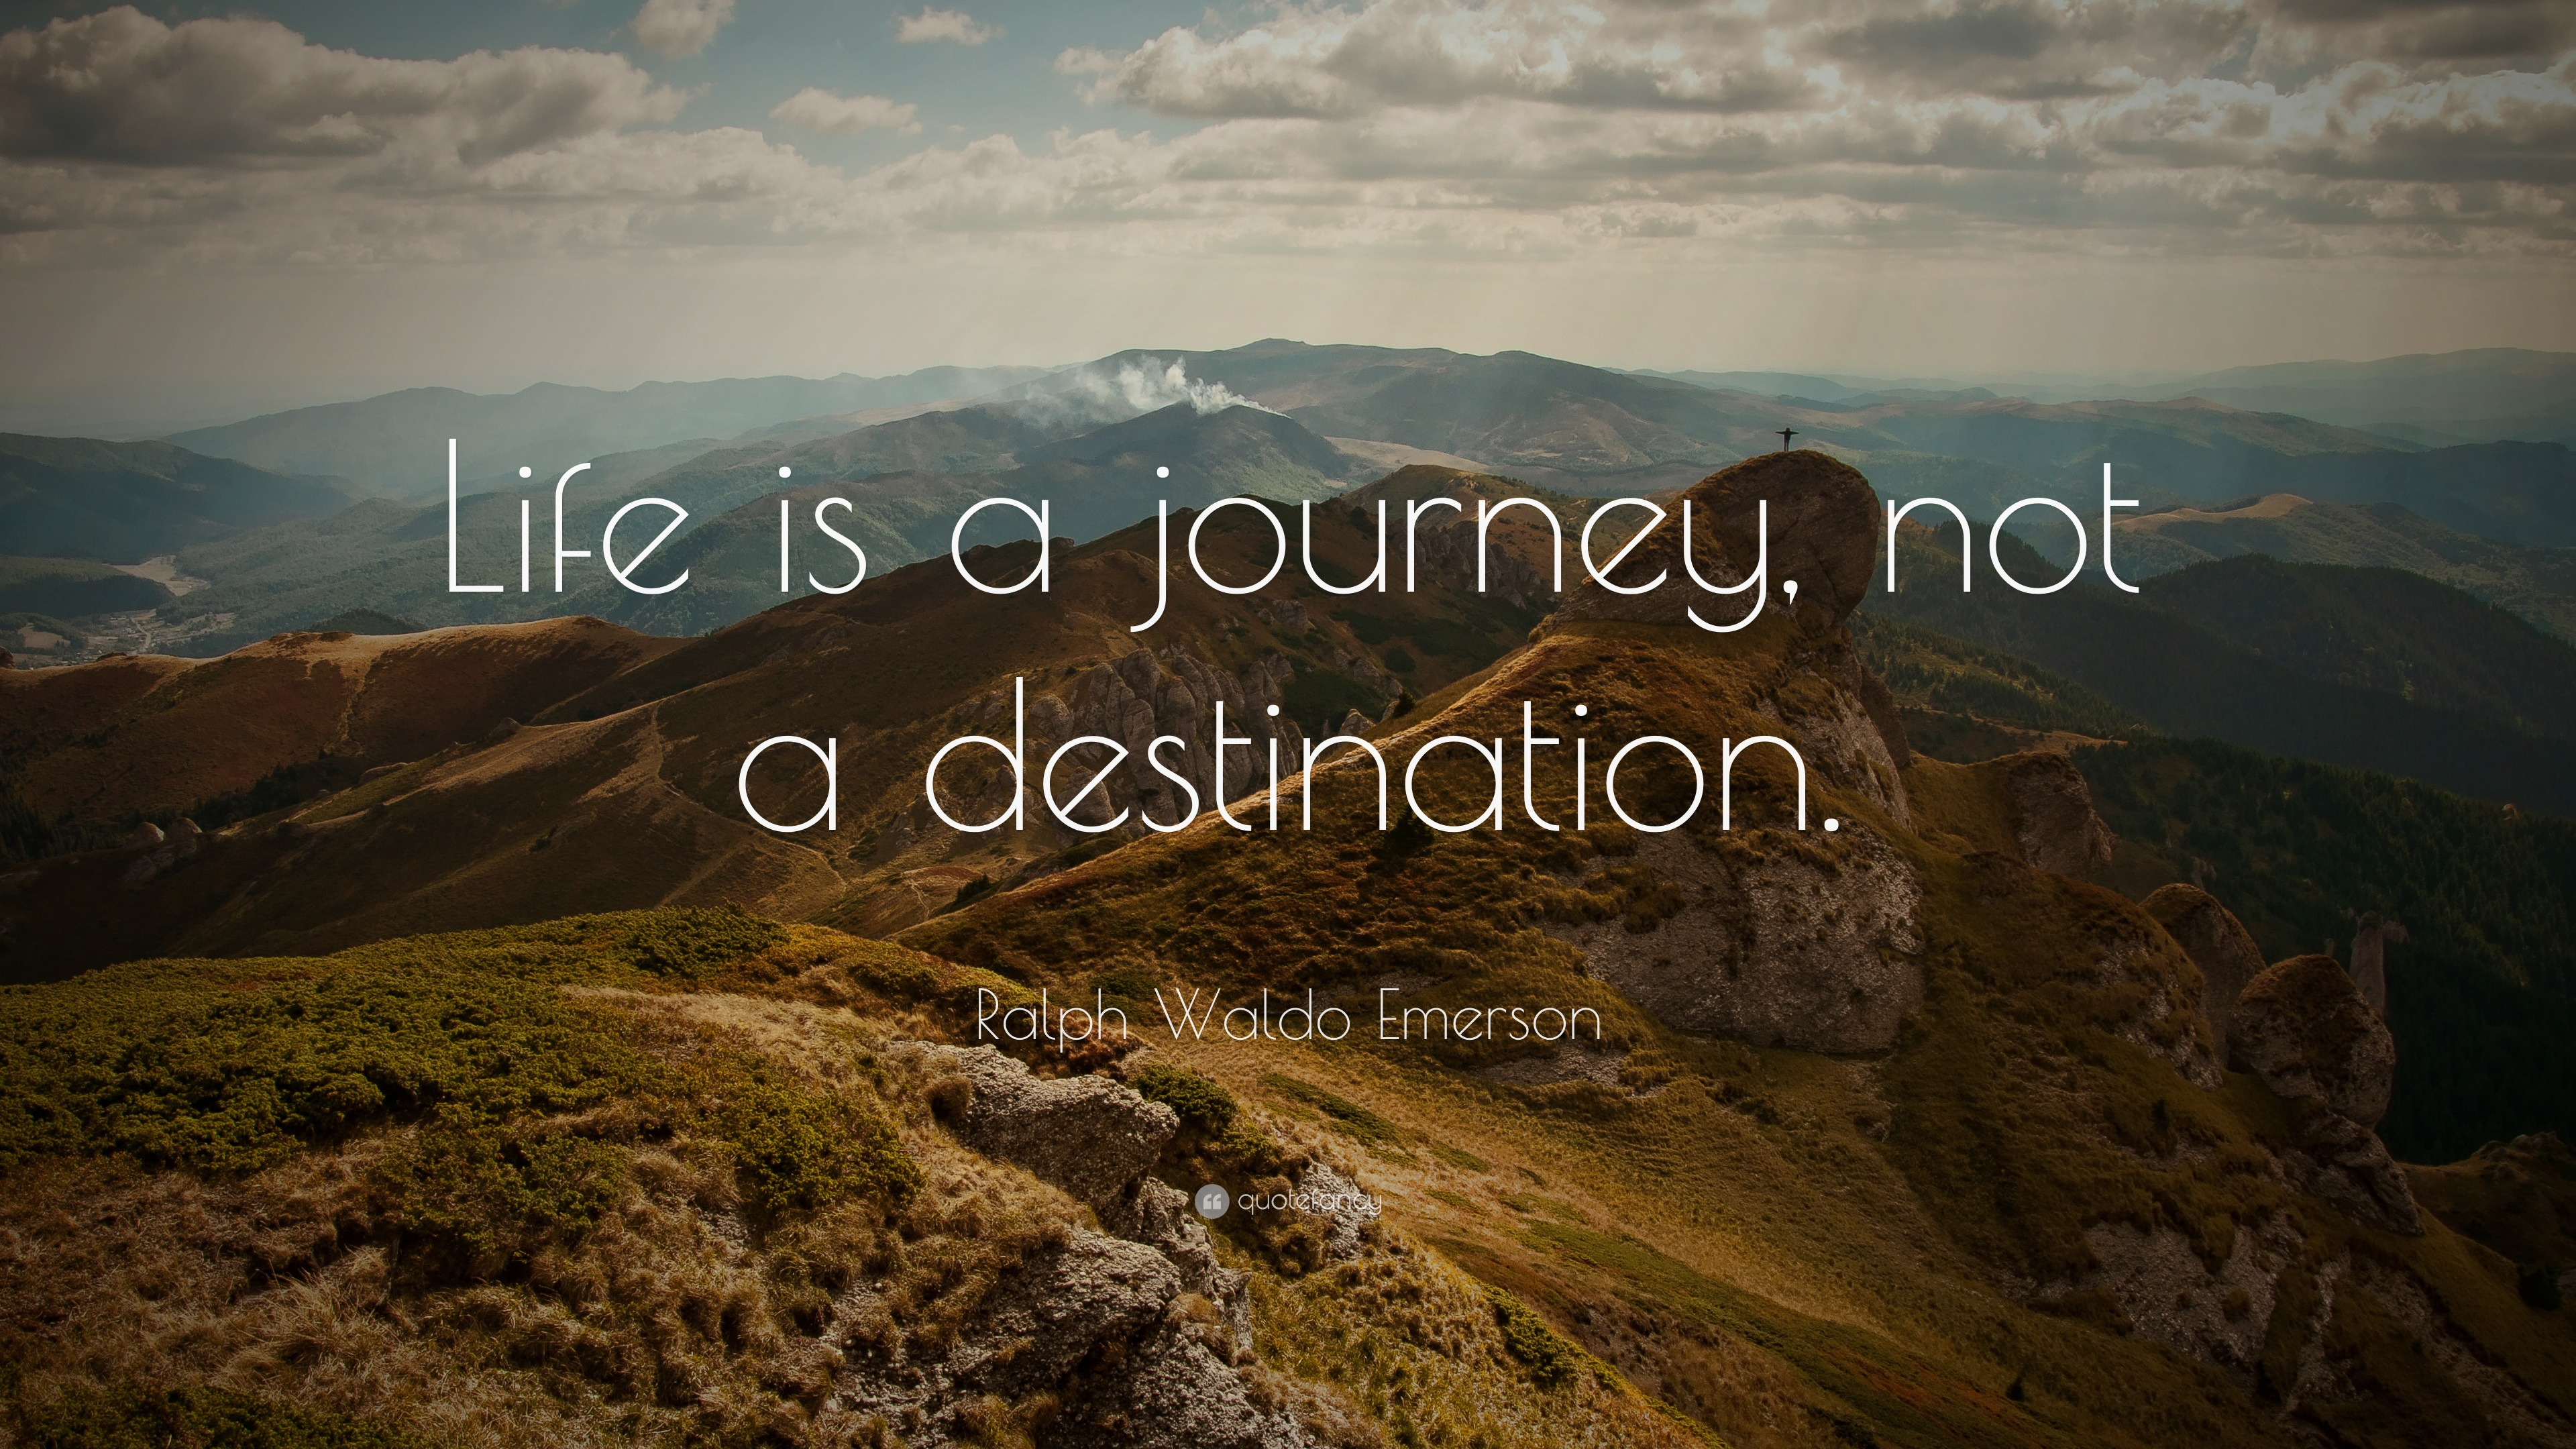 7023 ralph waldo emerson quote life is a journey not a destination